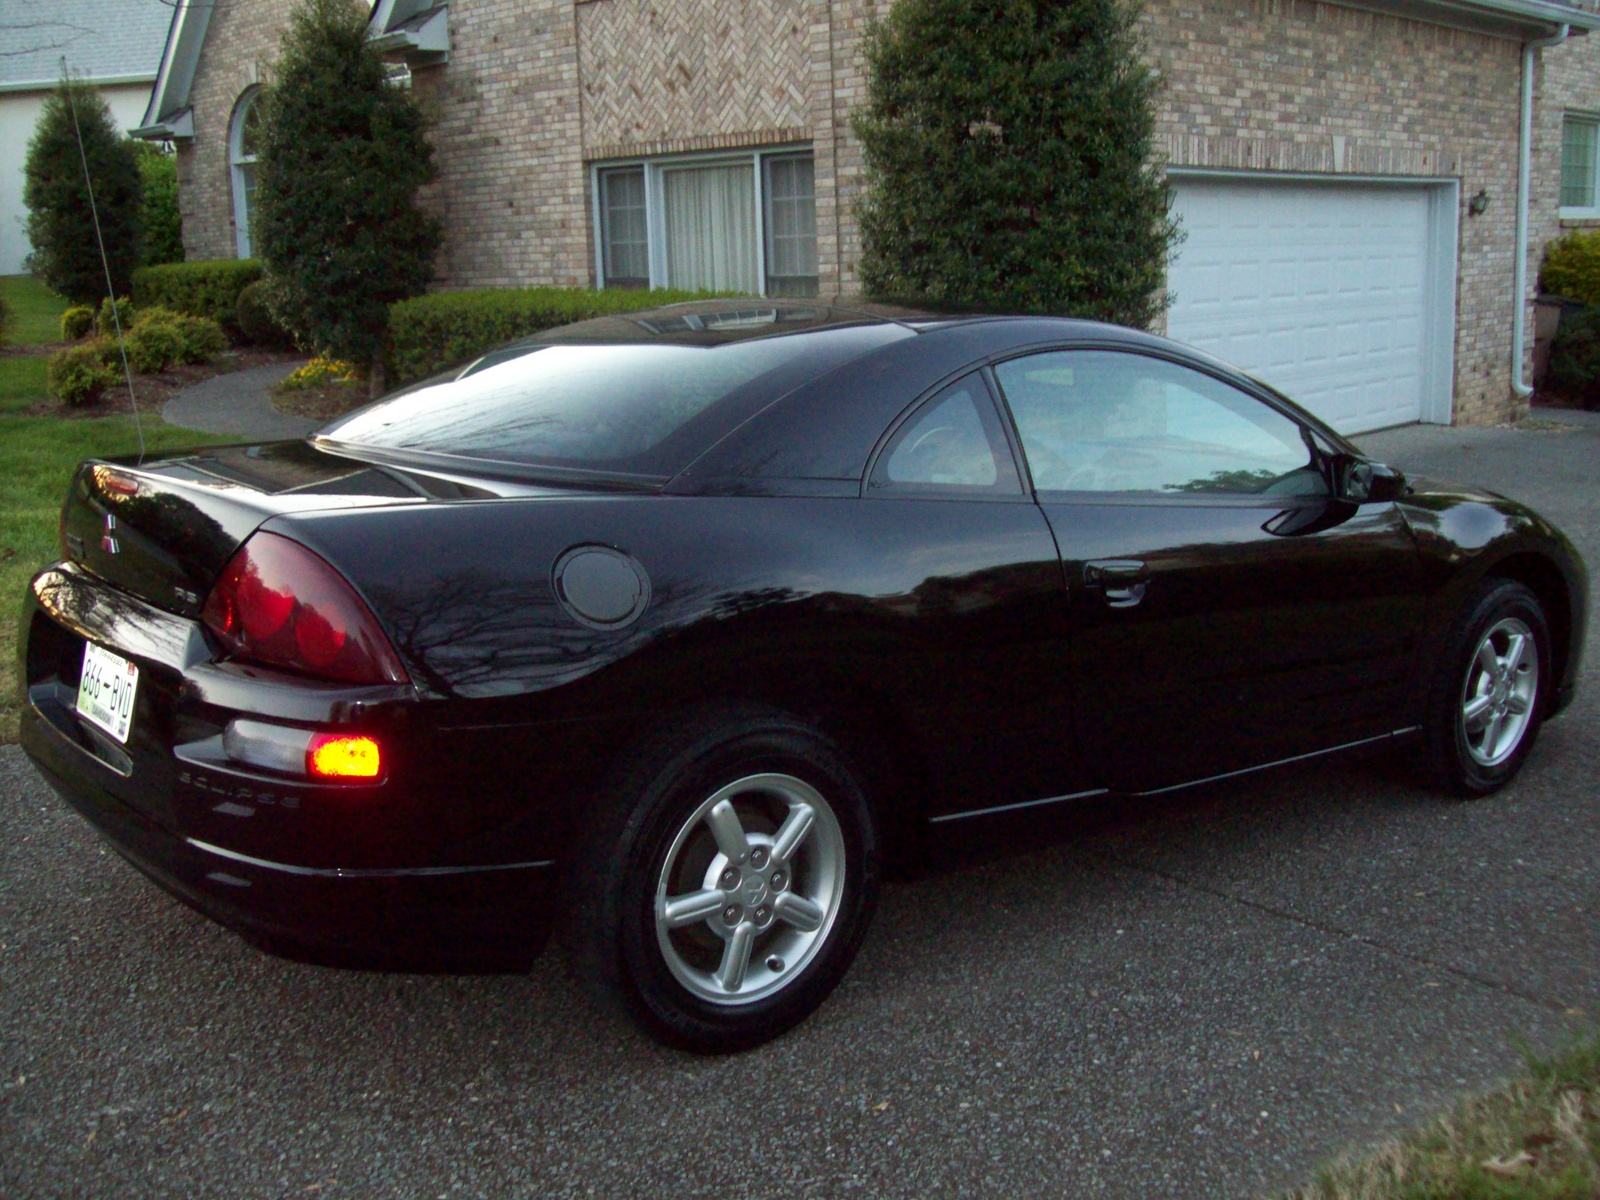 2000 Mitsubishi Eclipse RS - Pictures - Picture of 2000 Mitsubishi Ecl ...